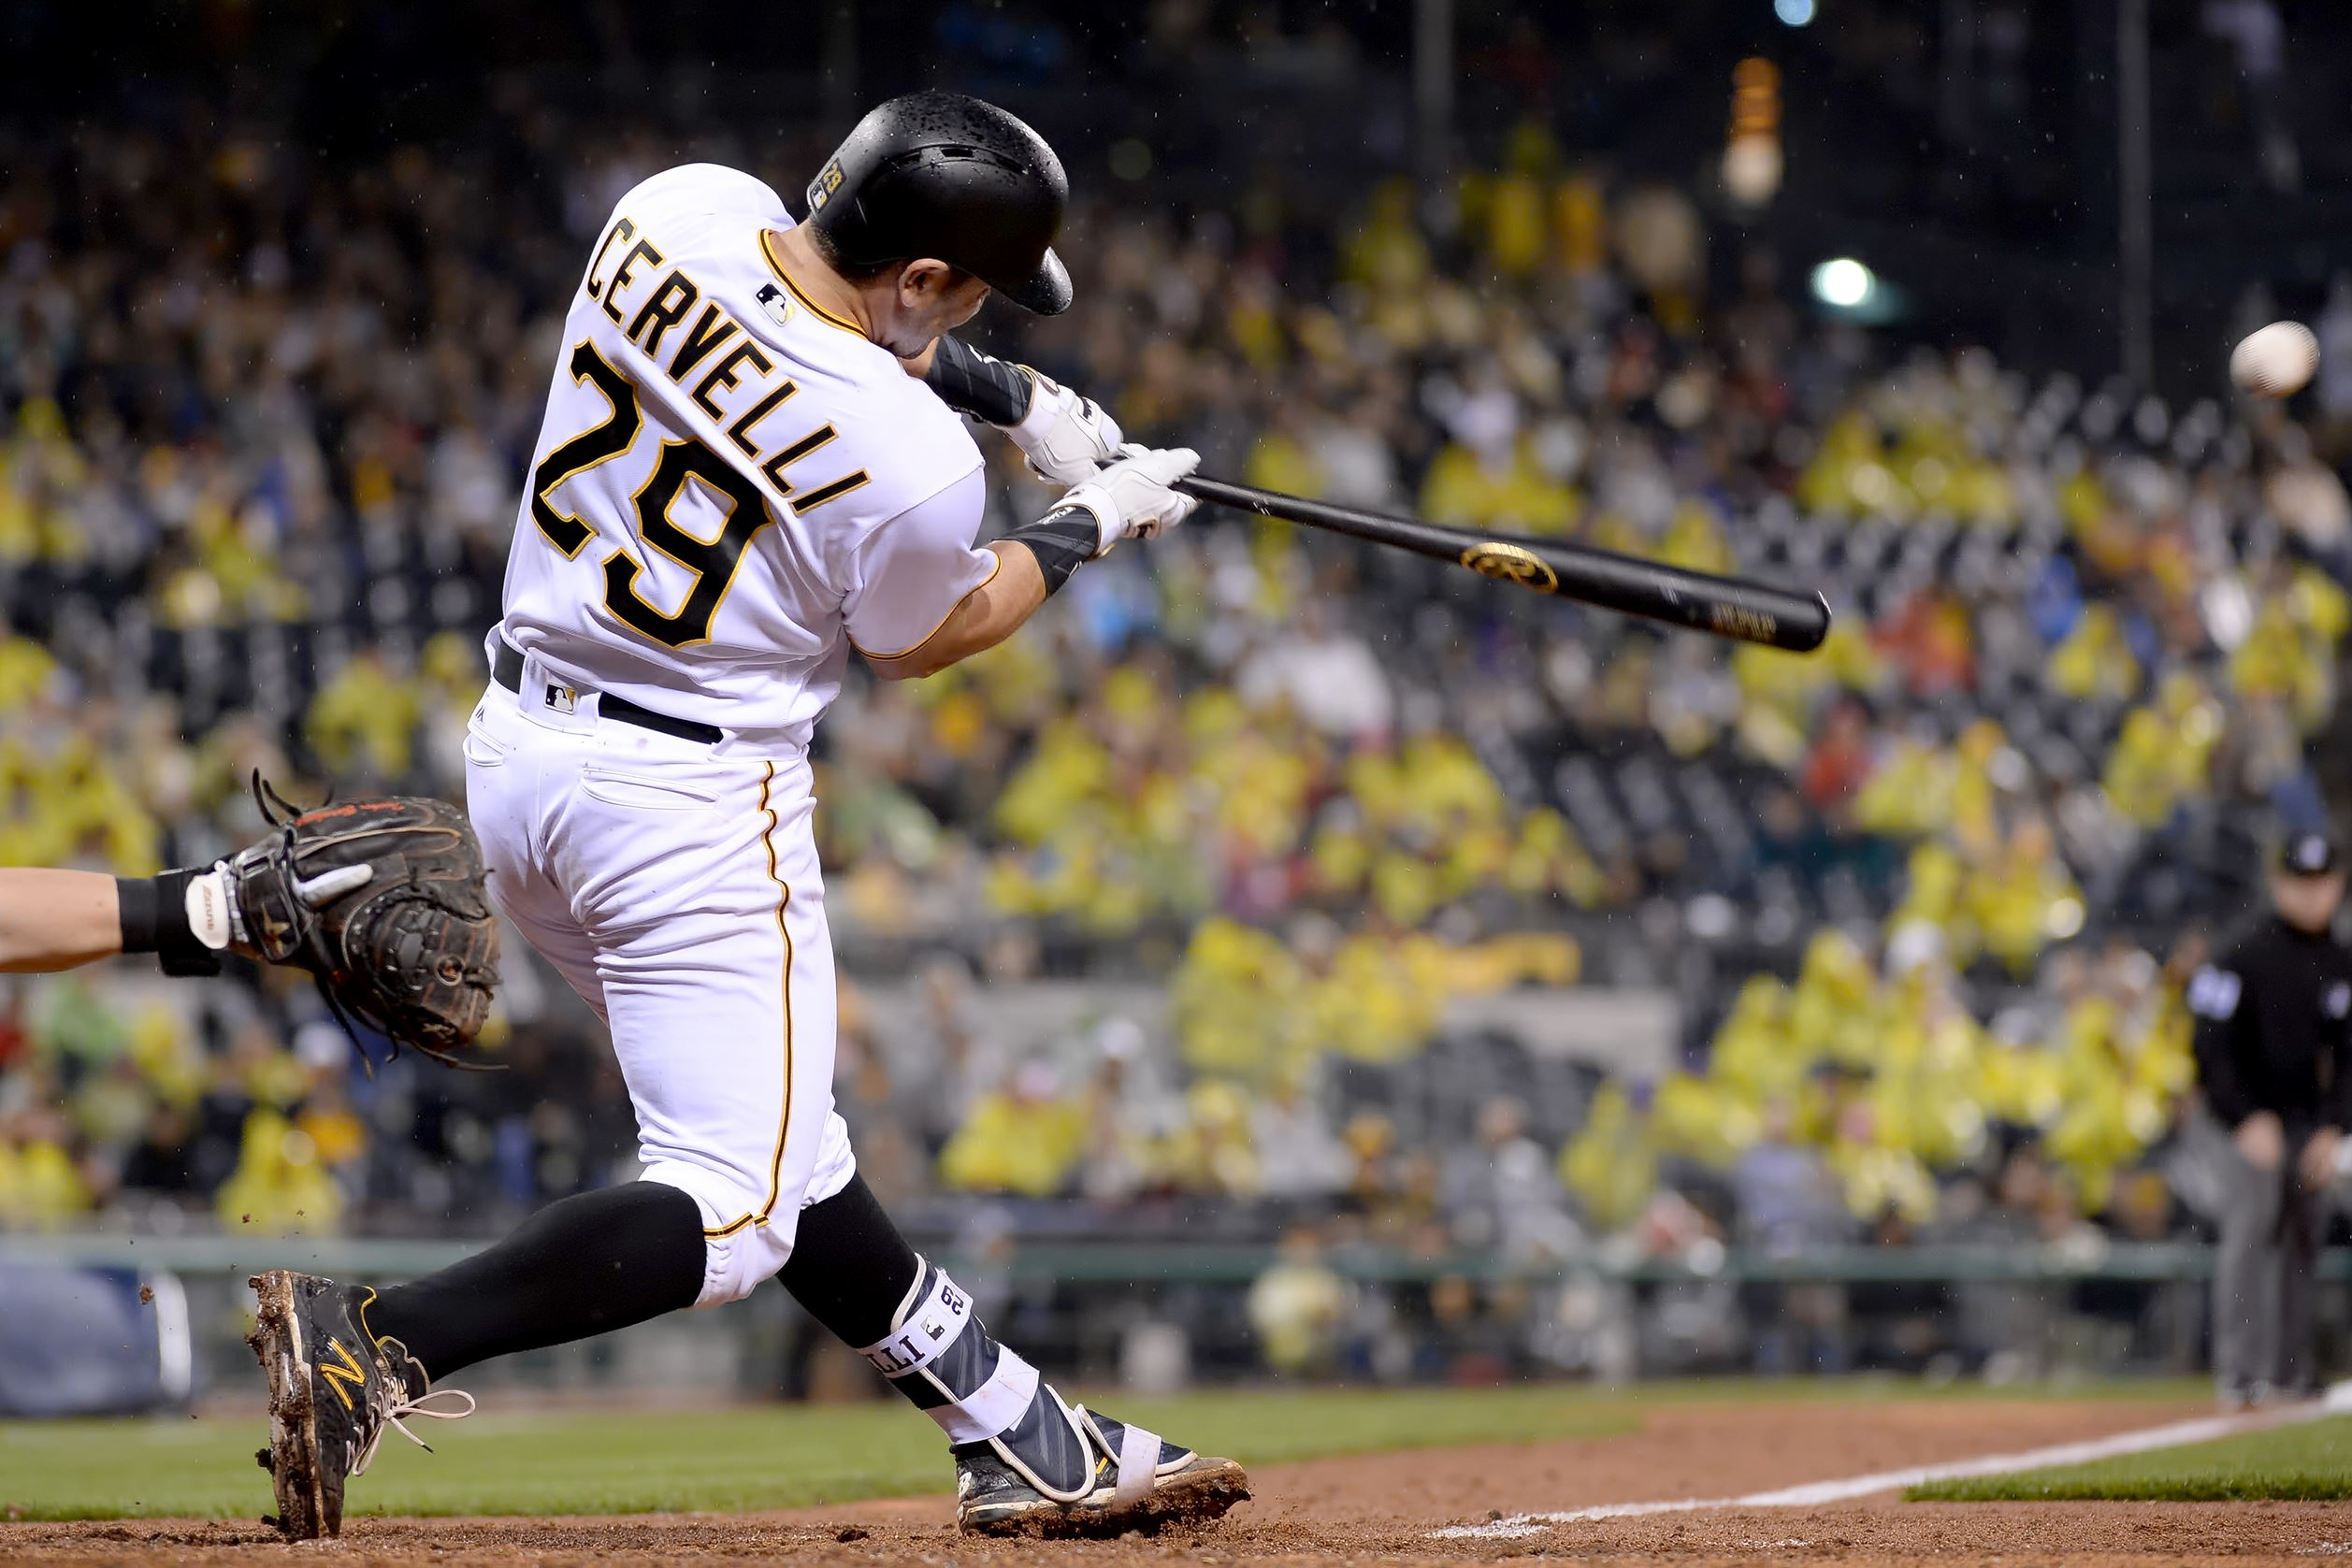 Pirates notebook: Pitching prospect Kuhl makes first start tonight against Dodgers